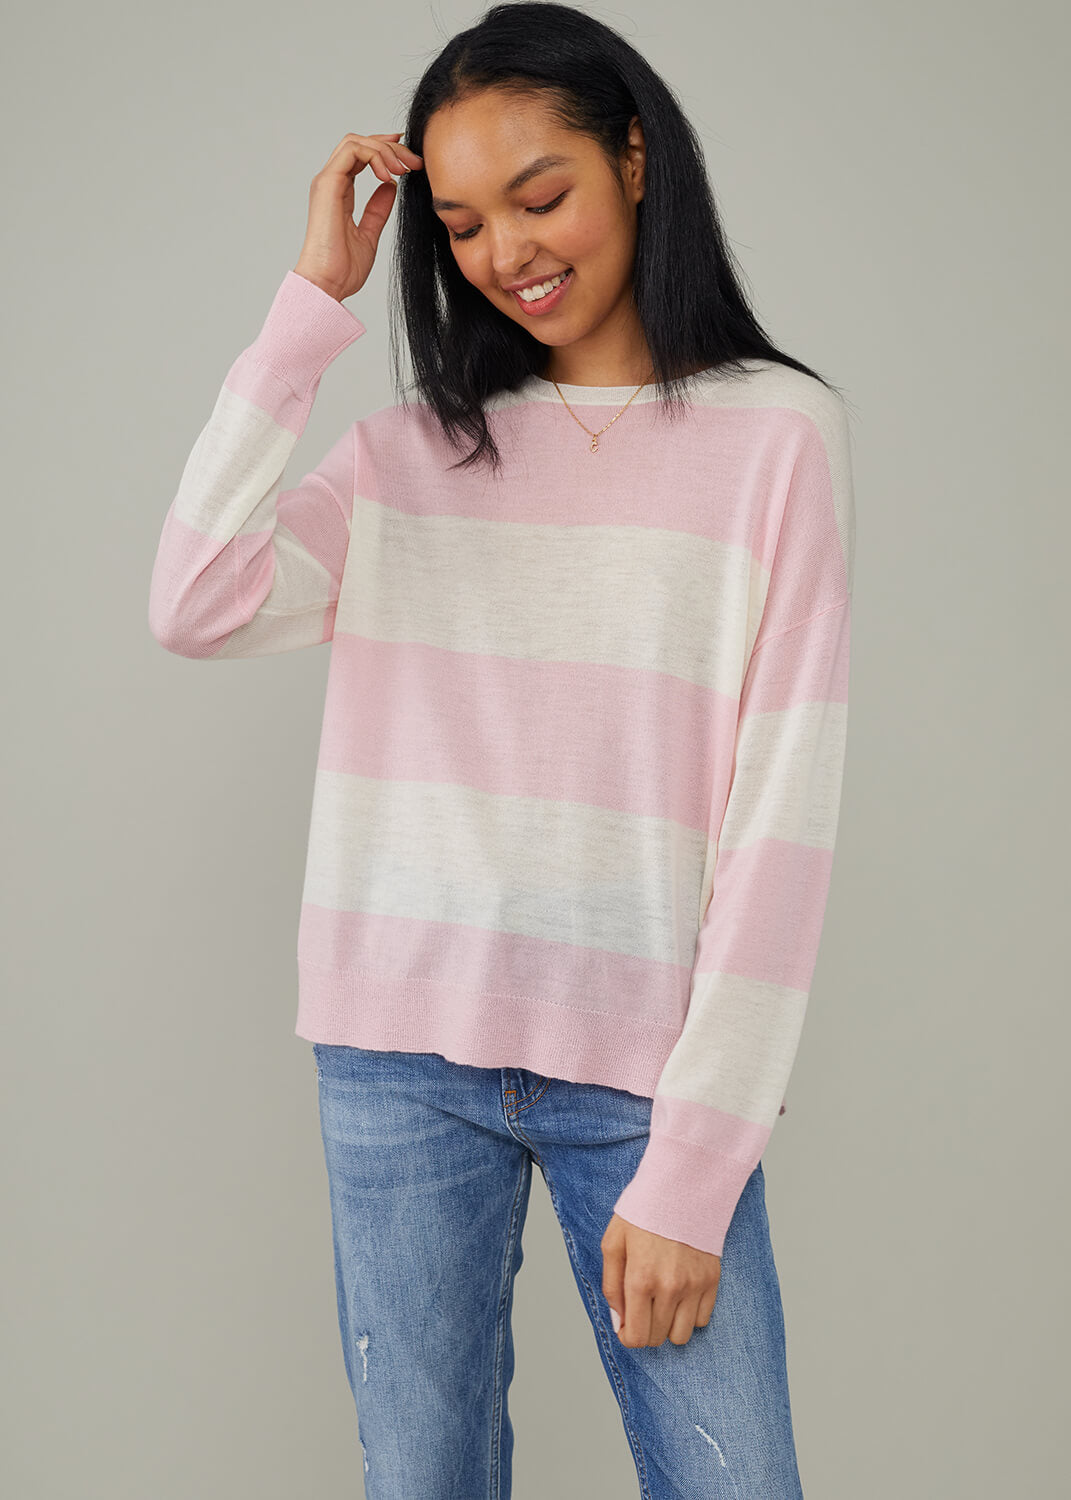 Susan - Sweater - Candy Stripes - Pink Cream